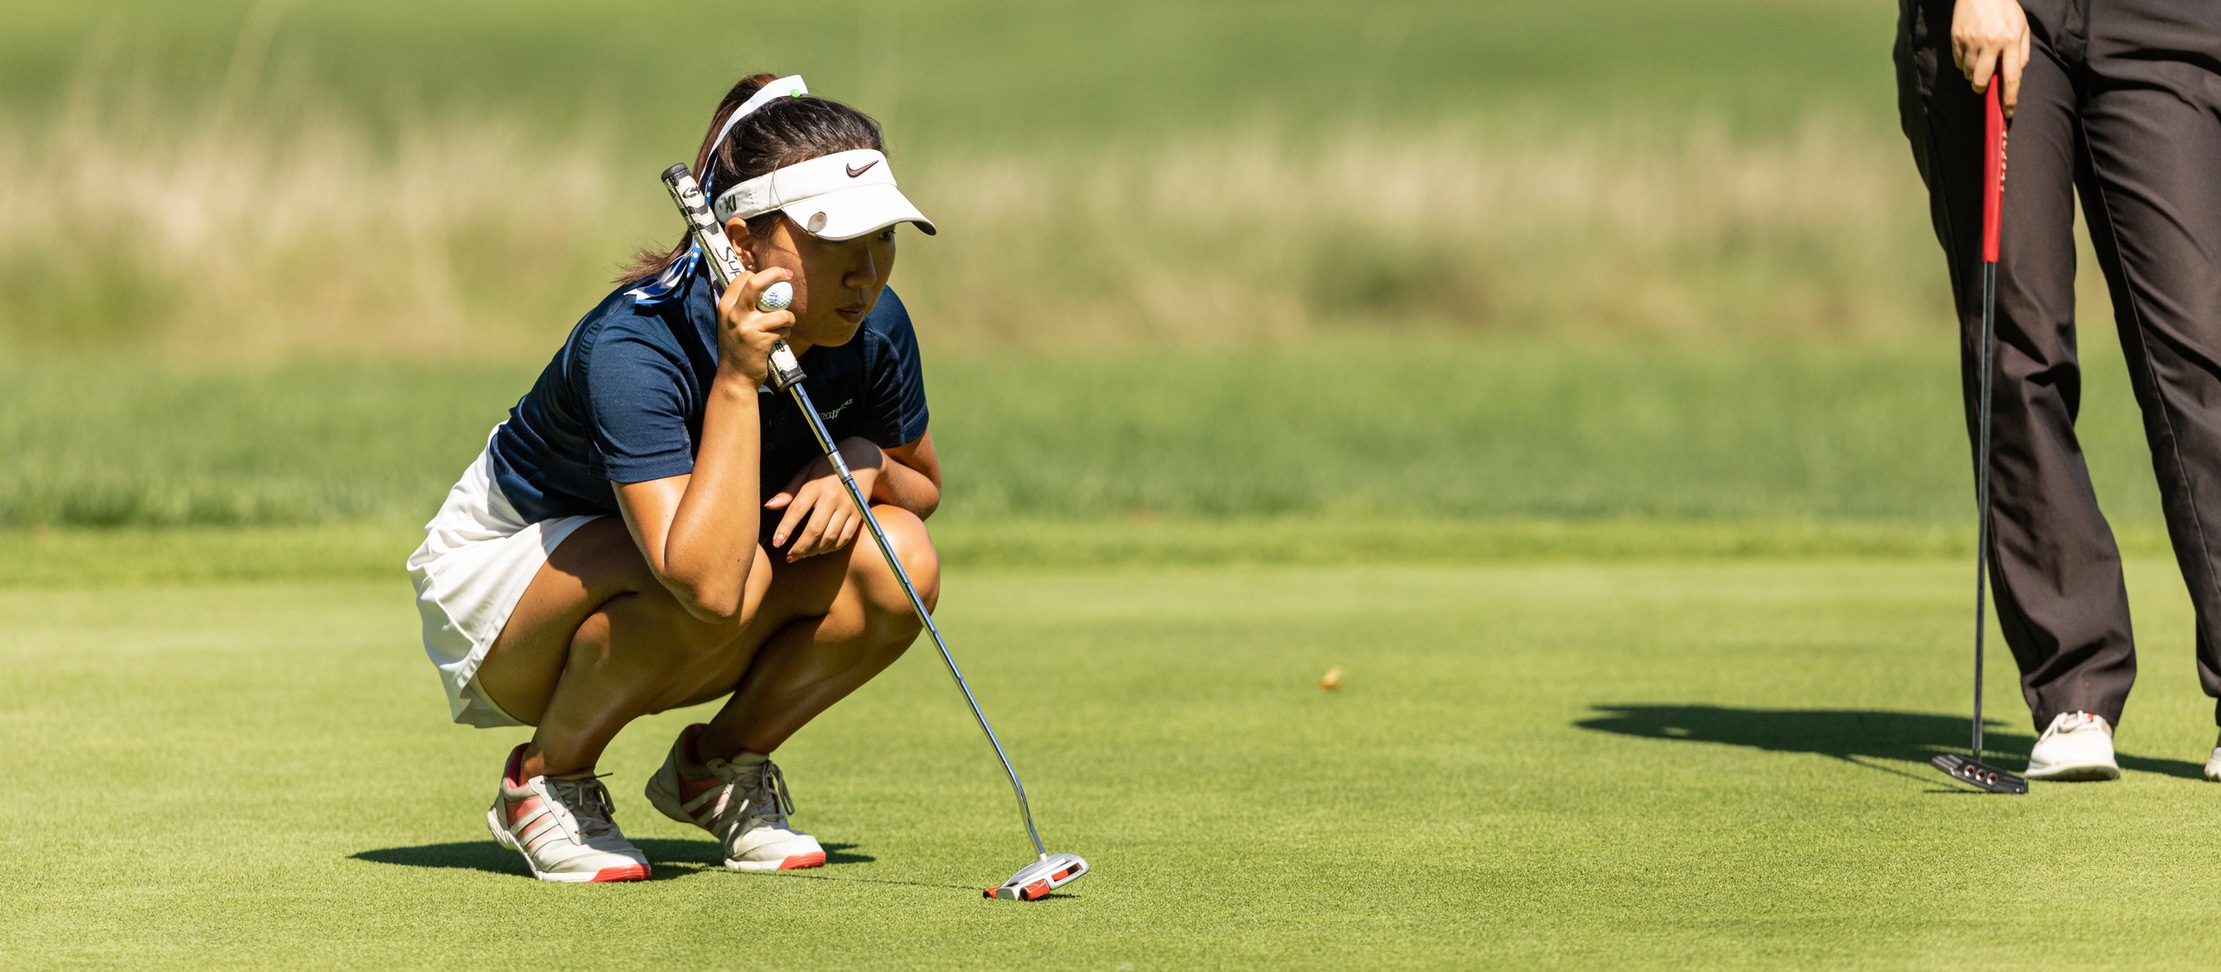 Golf Concludes Fall Season With Top-Five Finish at NYU Invitational